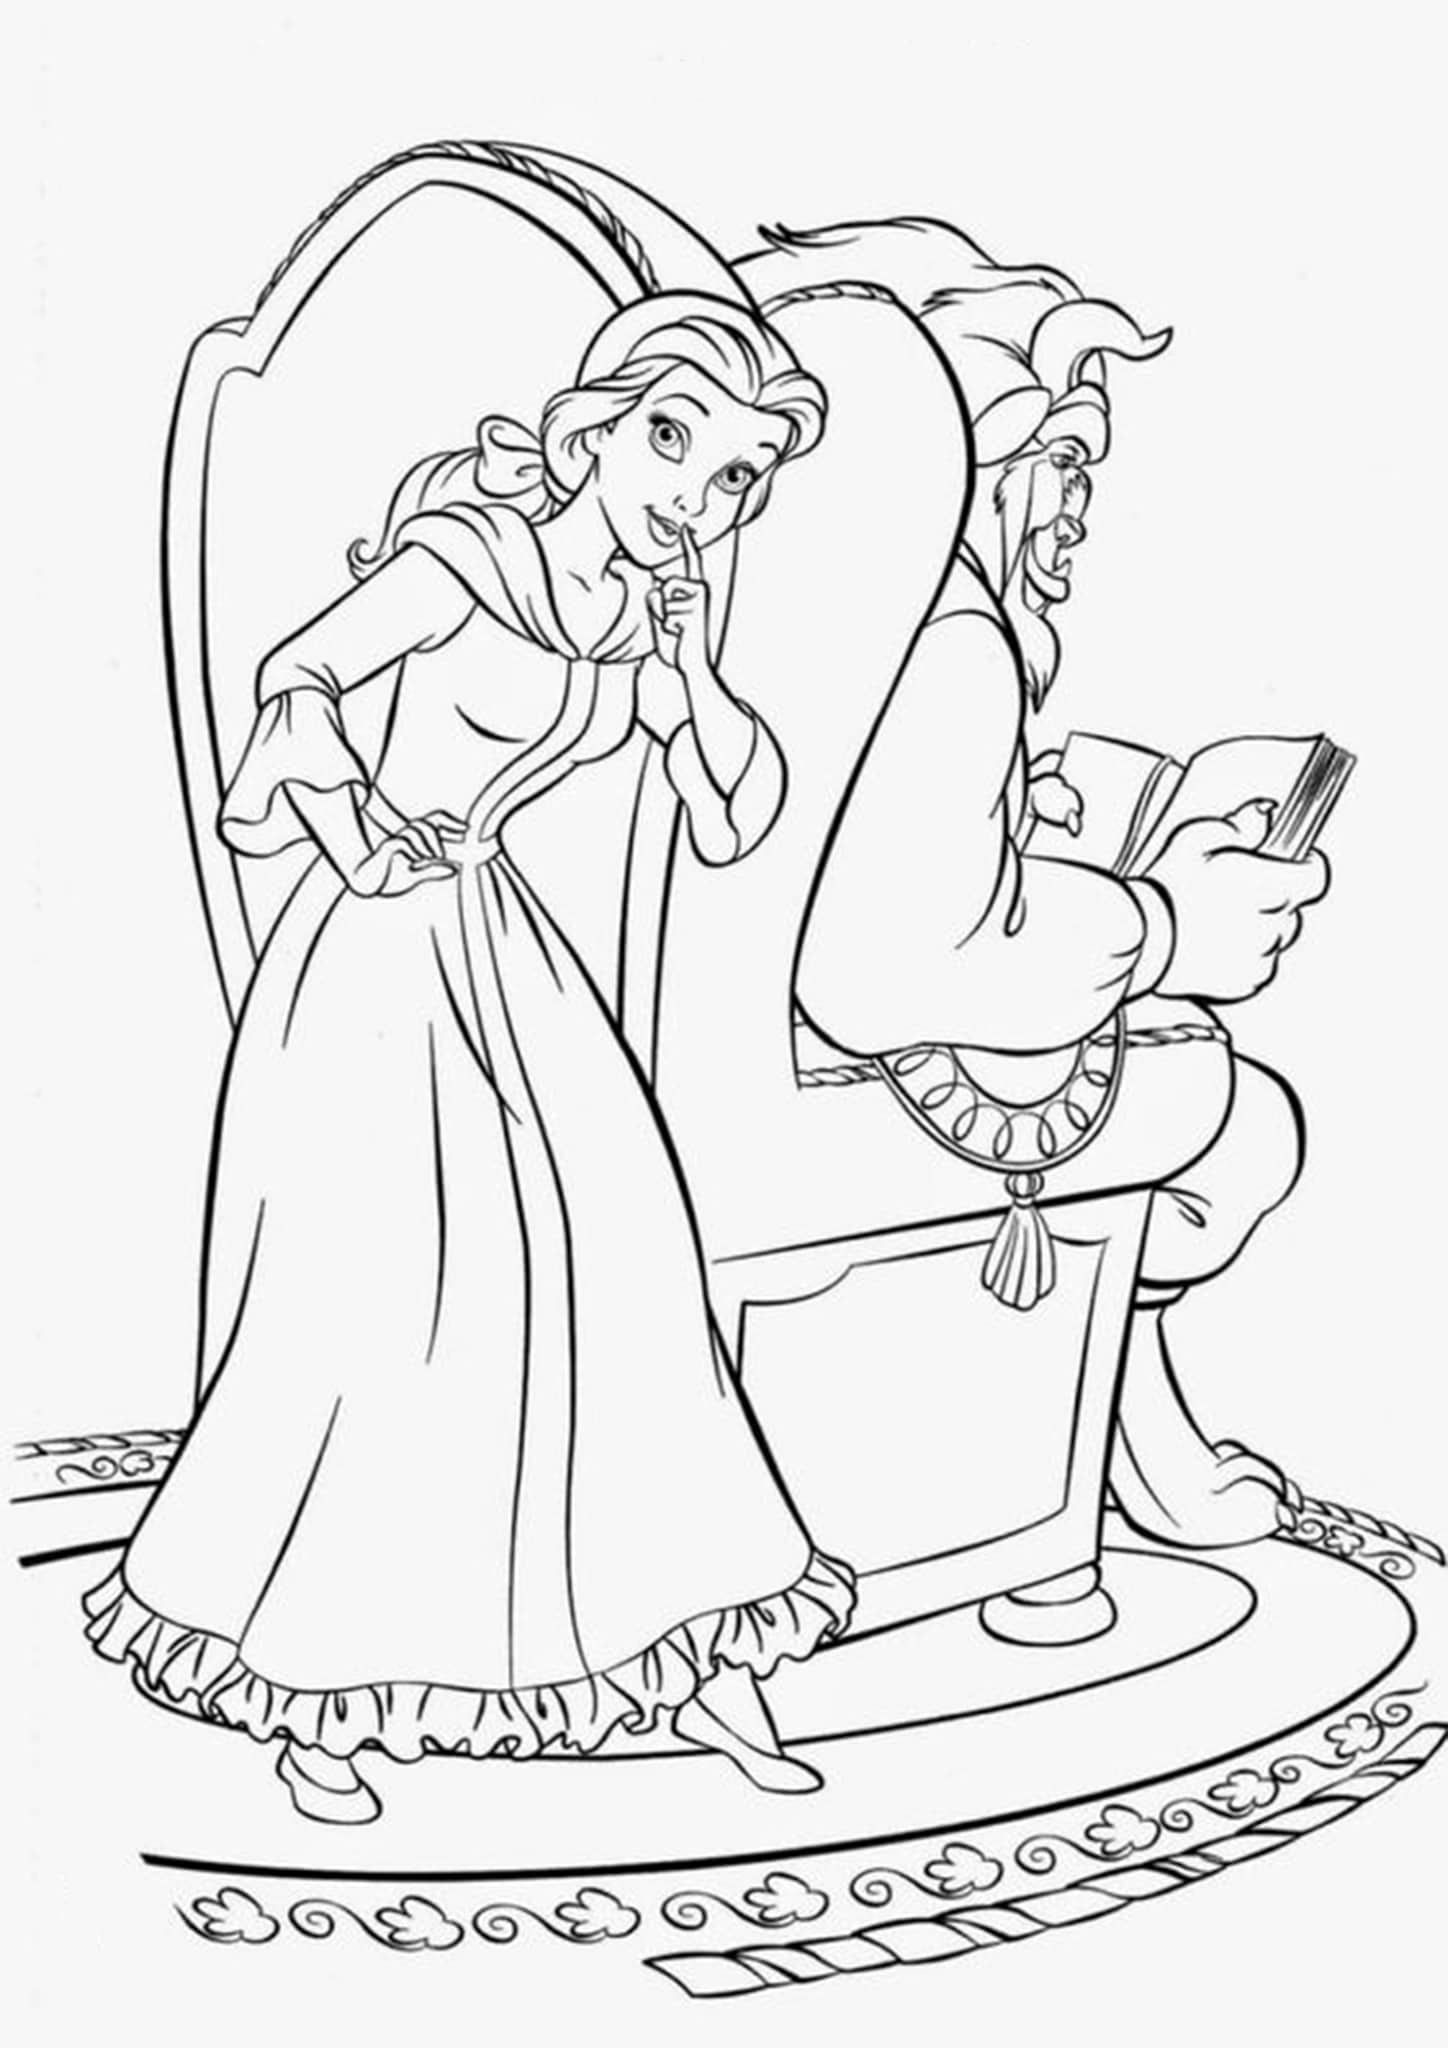 beauty and the beast colouring page coloring pages belle coloring pages from beauty and the beast colouring the page and beauty